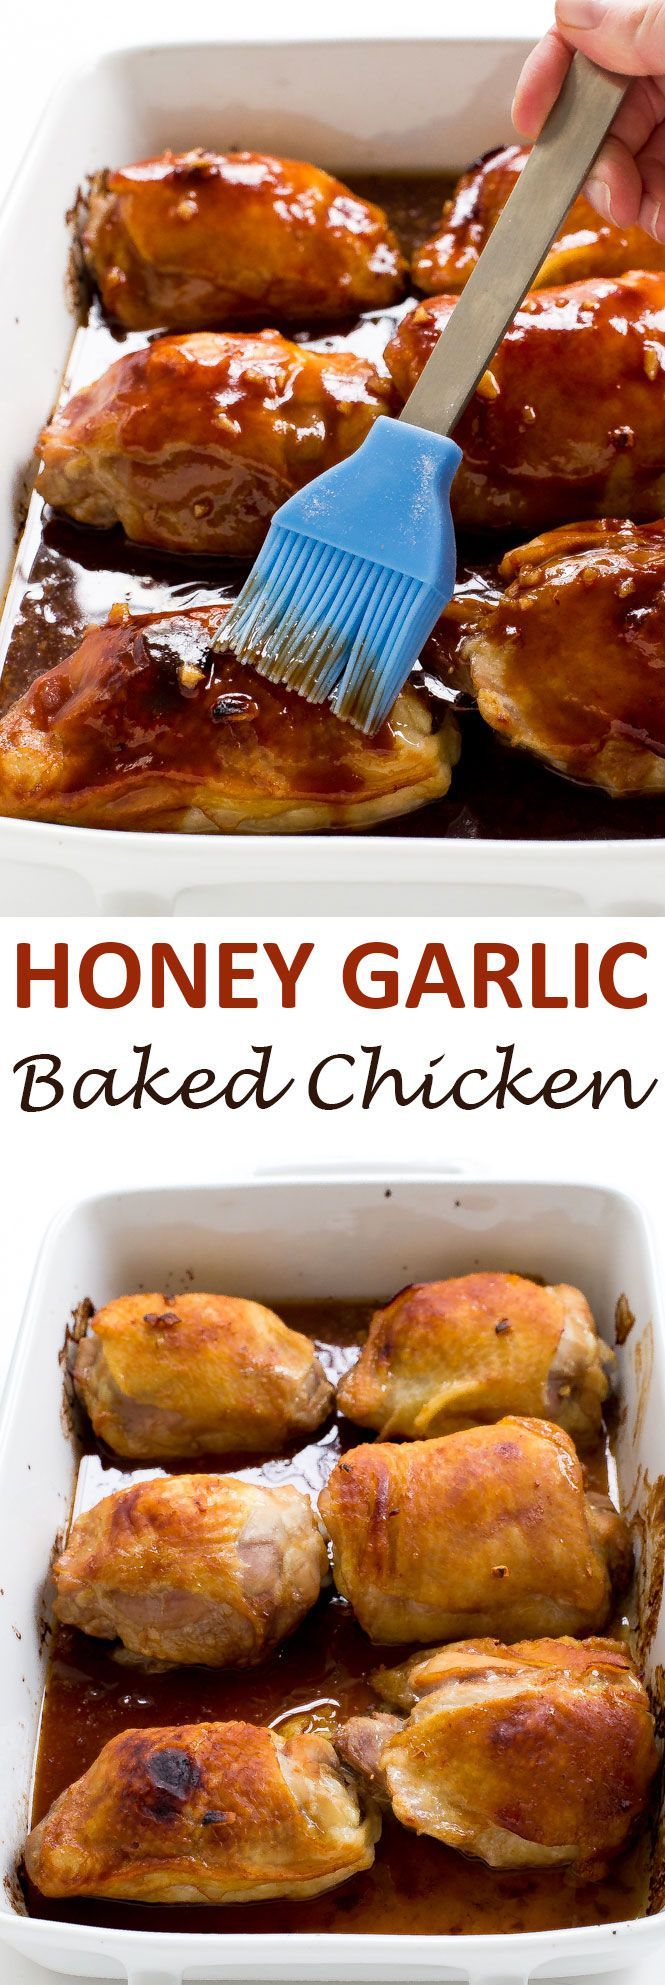 Honey Garlic Chicken Thighs marinated and baked until golden brown and juicy on the inside. They are topped with an amazing Honey Garlic sauce! | chefsavvy.com #recipe